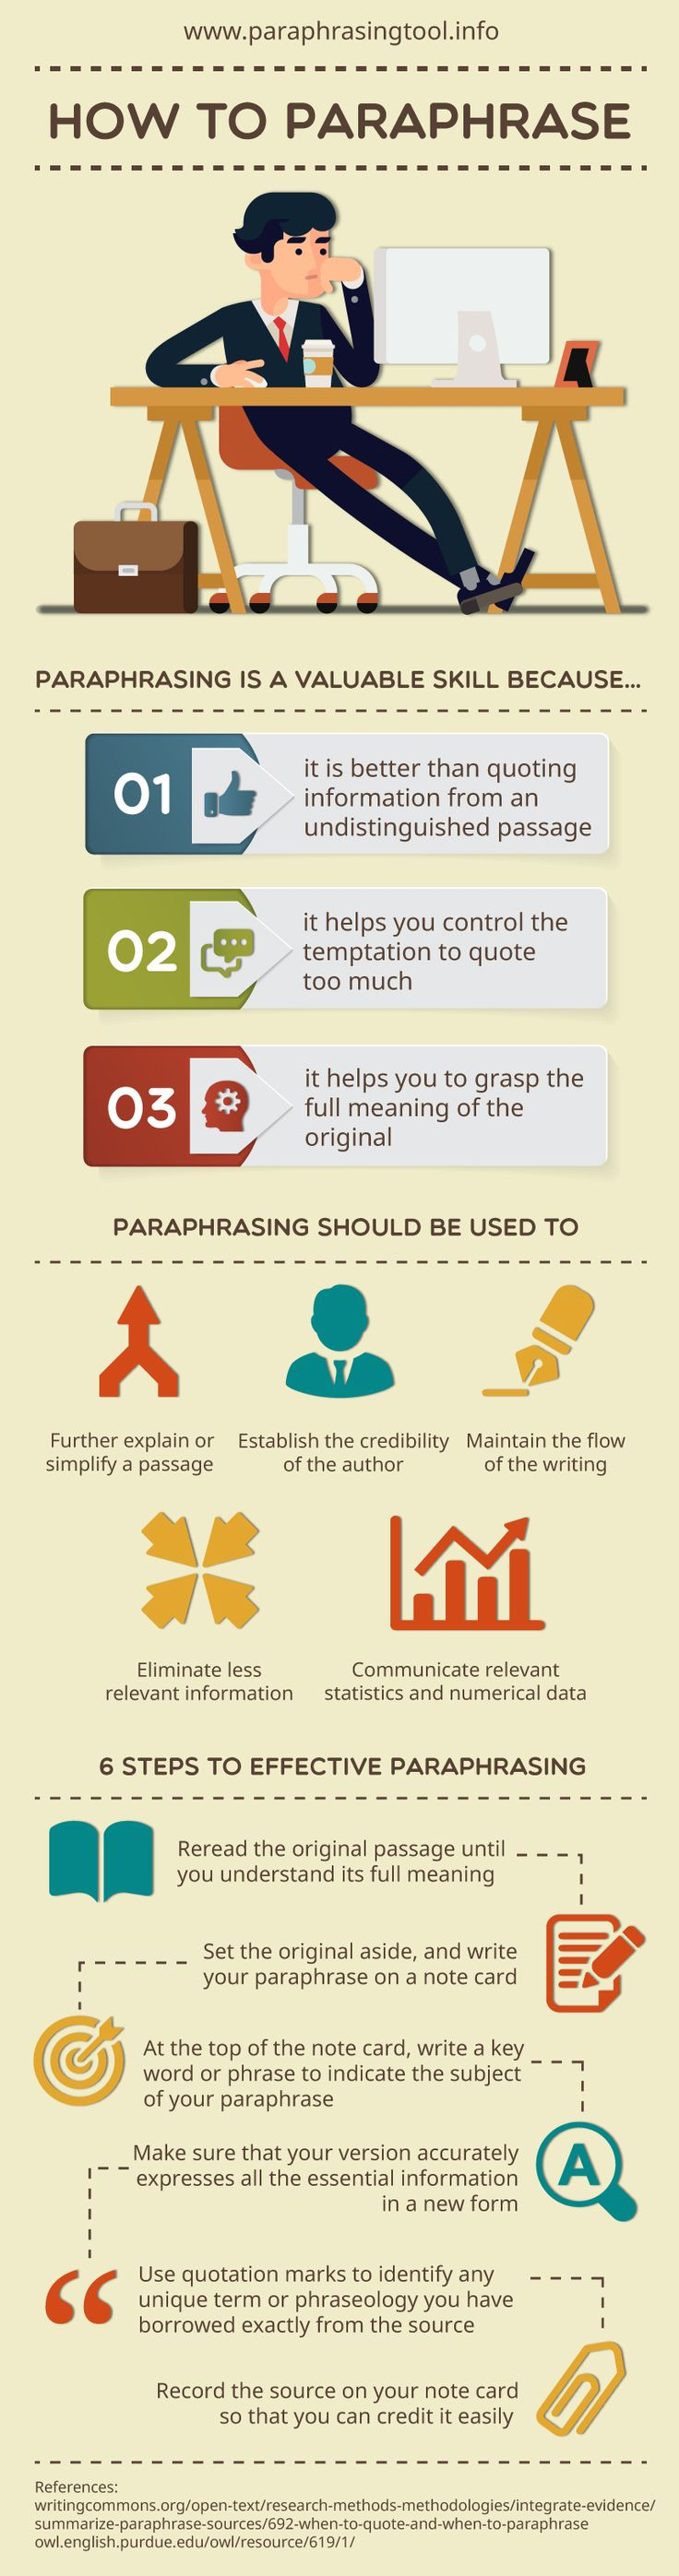 best images about how to or steps ucollect infographics on how to paraphrase online